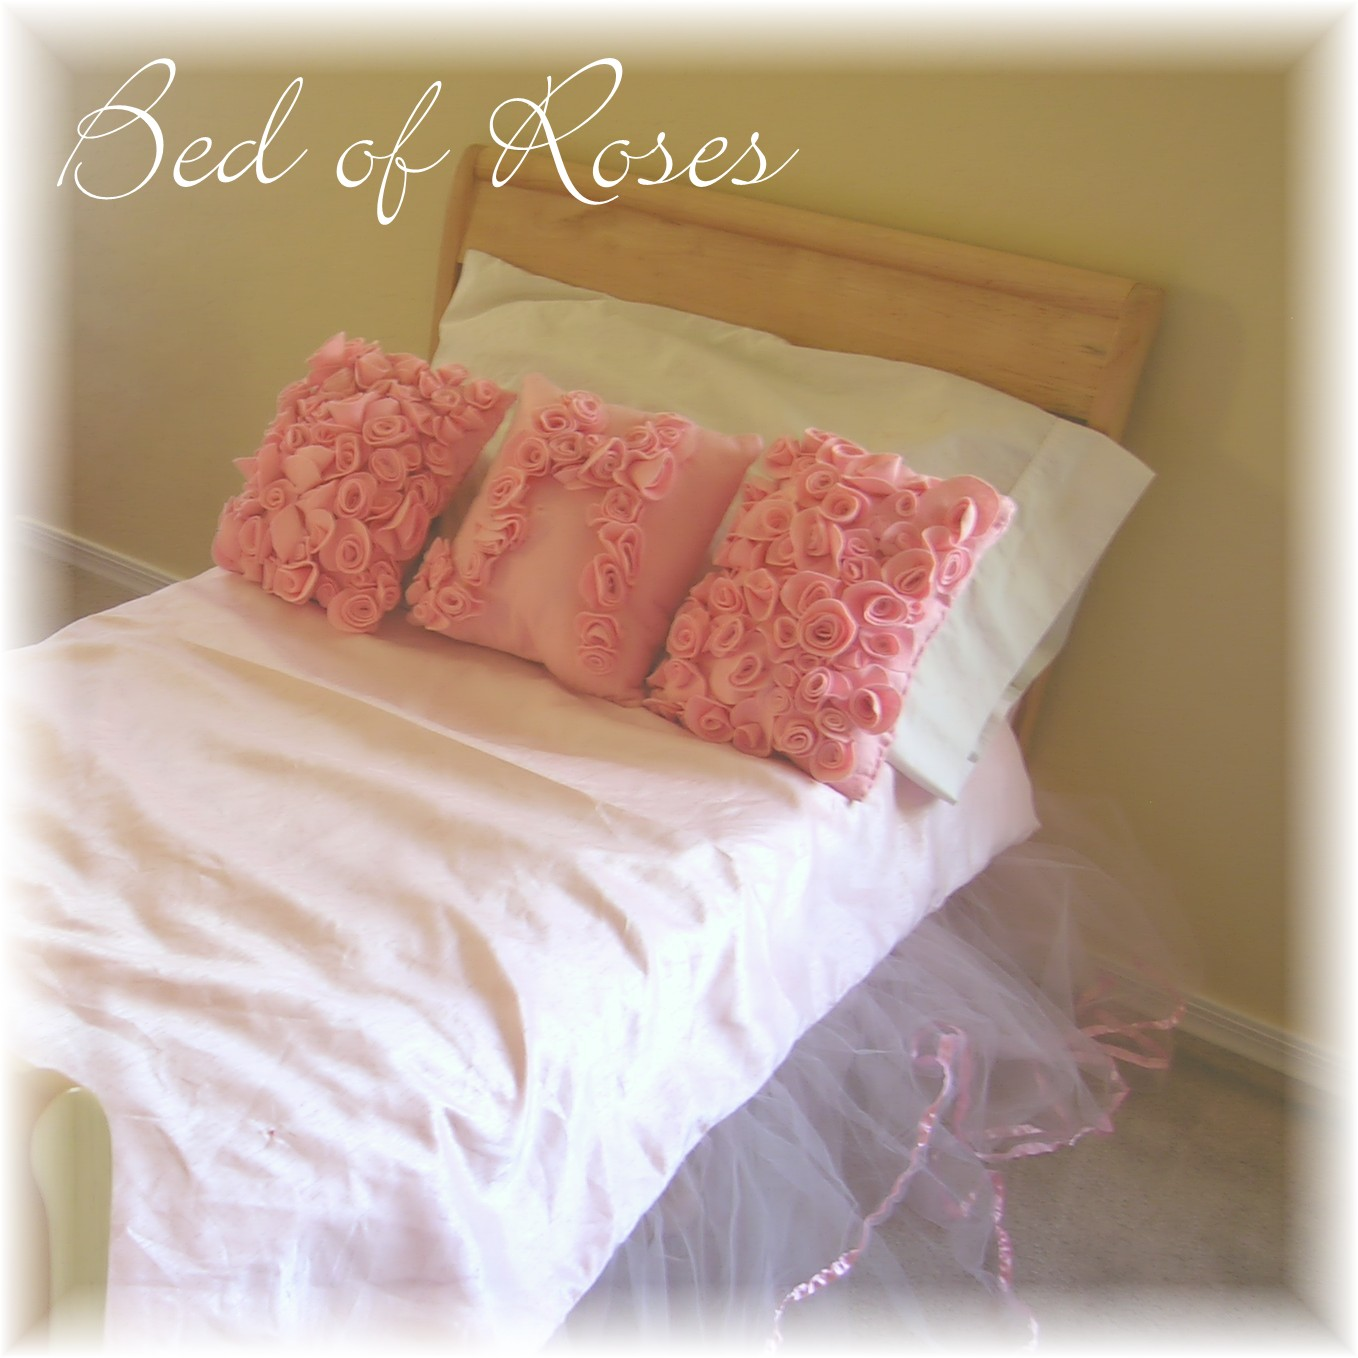 Bed of roses, sweet little rose accent pillows ~American Felt & Craft ~ Blog